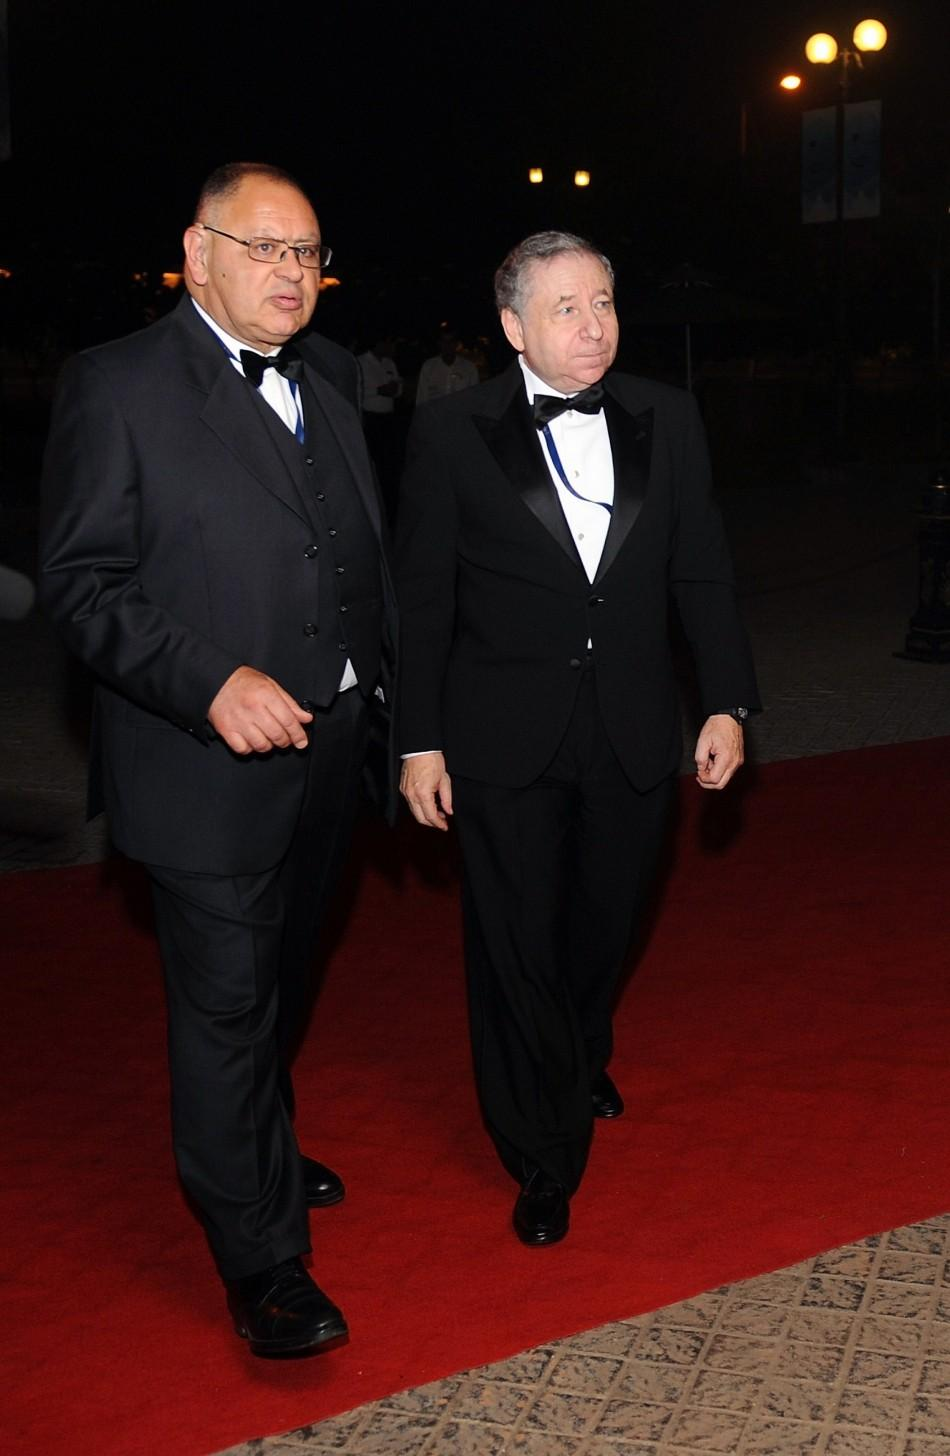 Head of the Federation Internationale de l'Automobile Jean Todt arrives for the 2011 FIA Gala night in Gurgaon